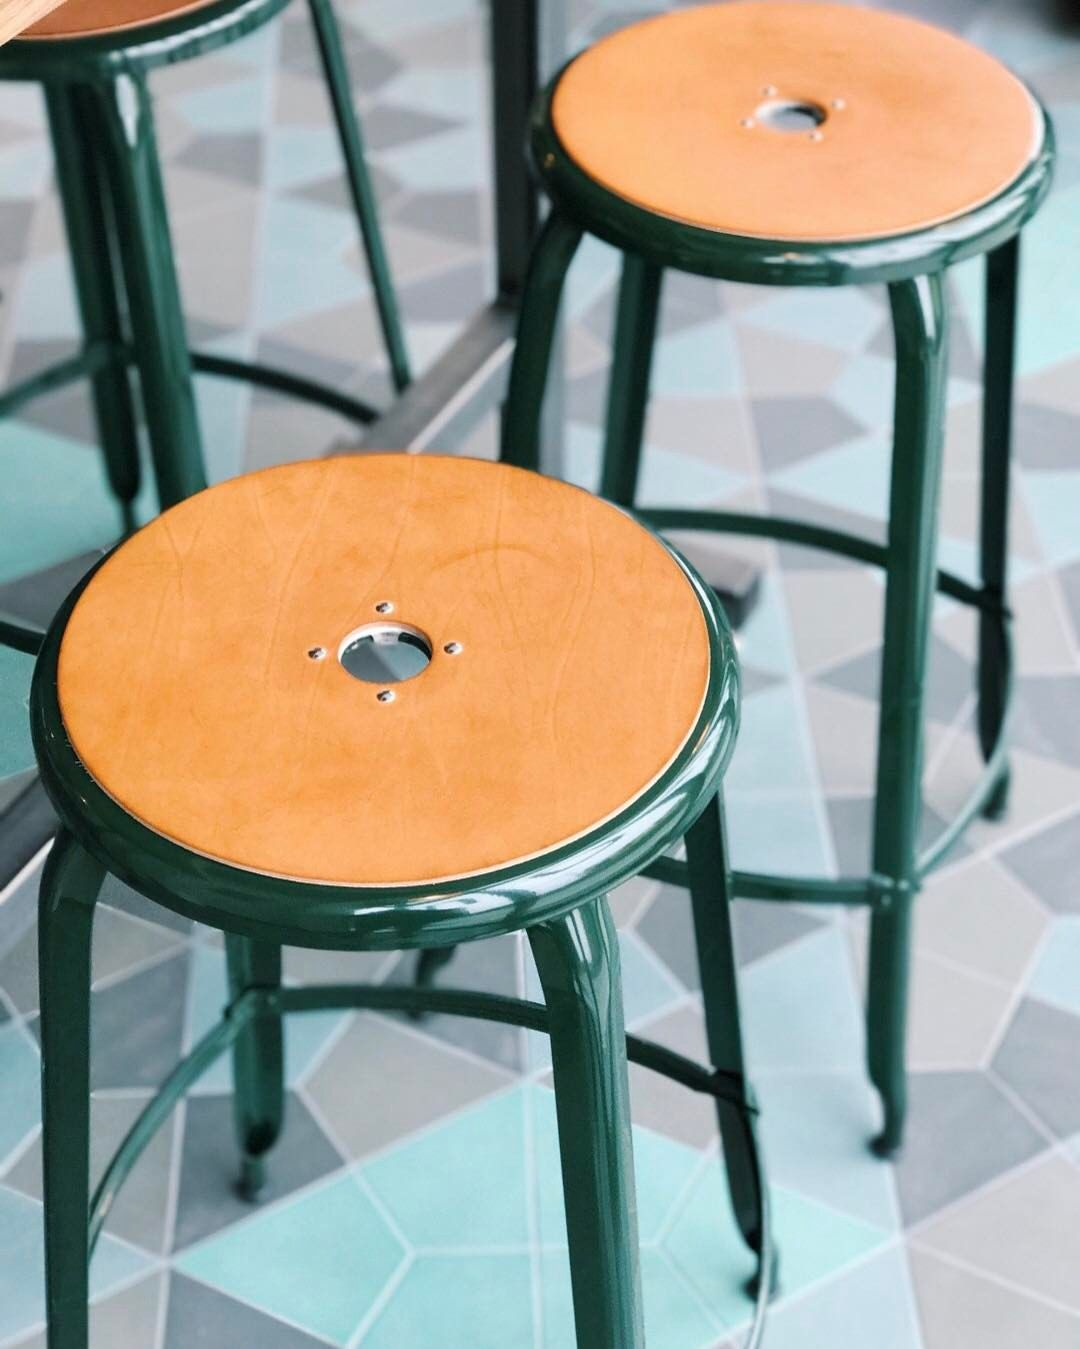 Pin by Rita Lyon on new house | Pinterest | Bar stool, Stools and ...